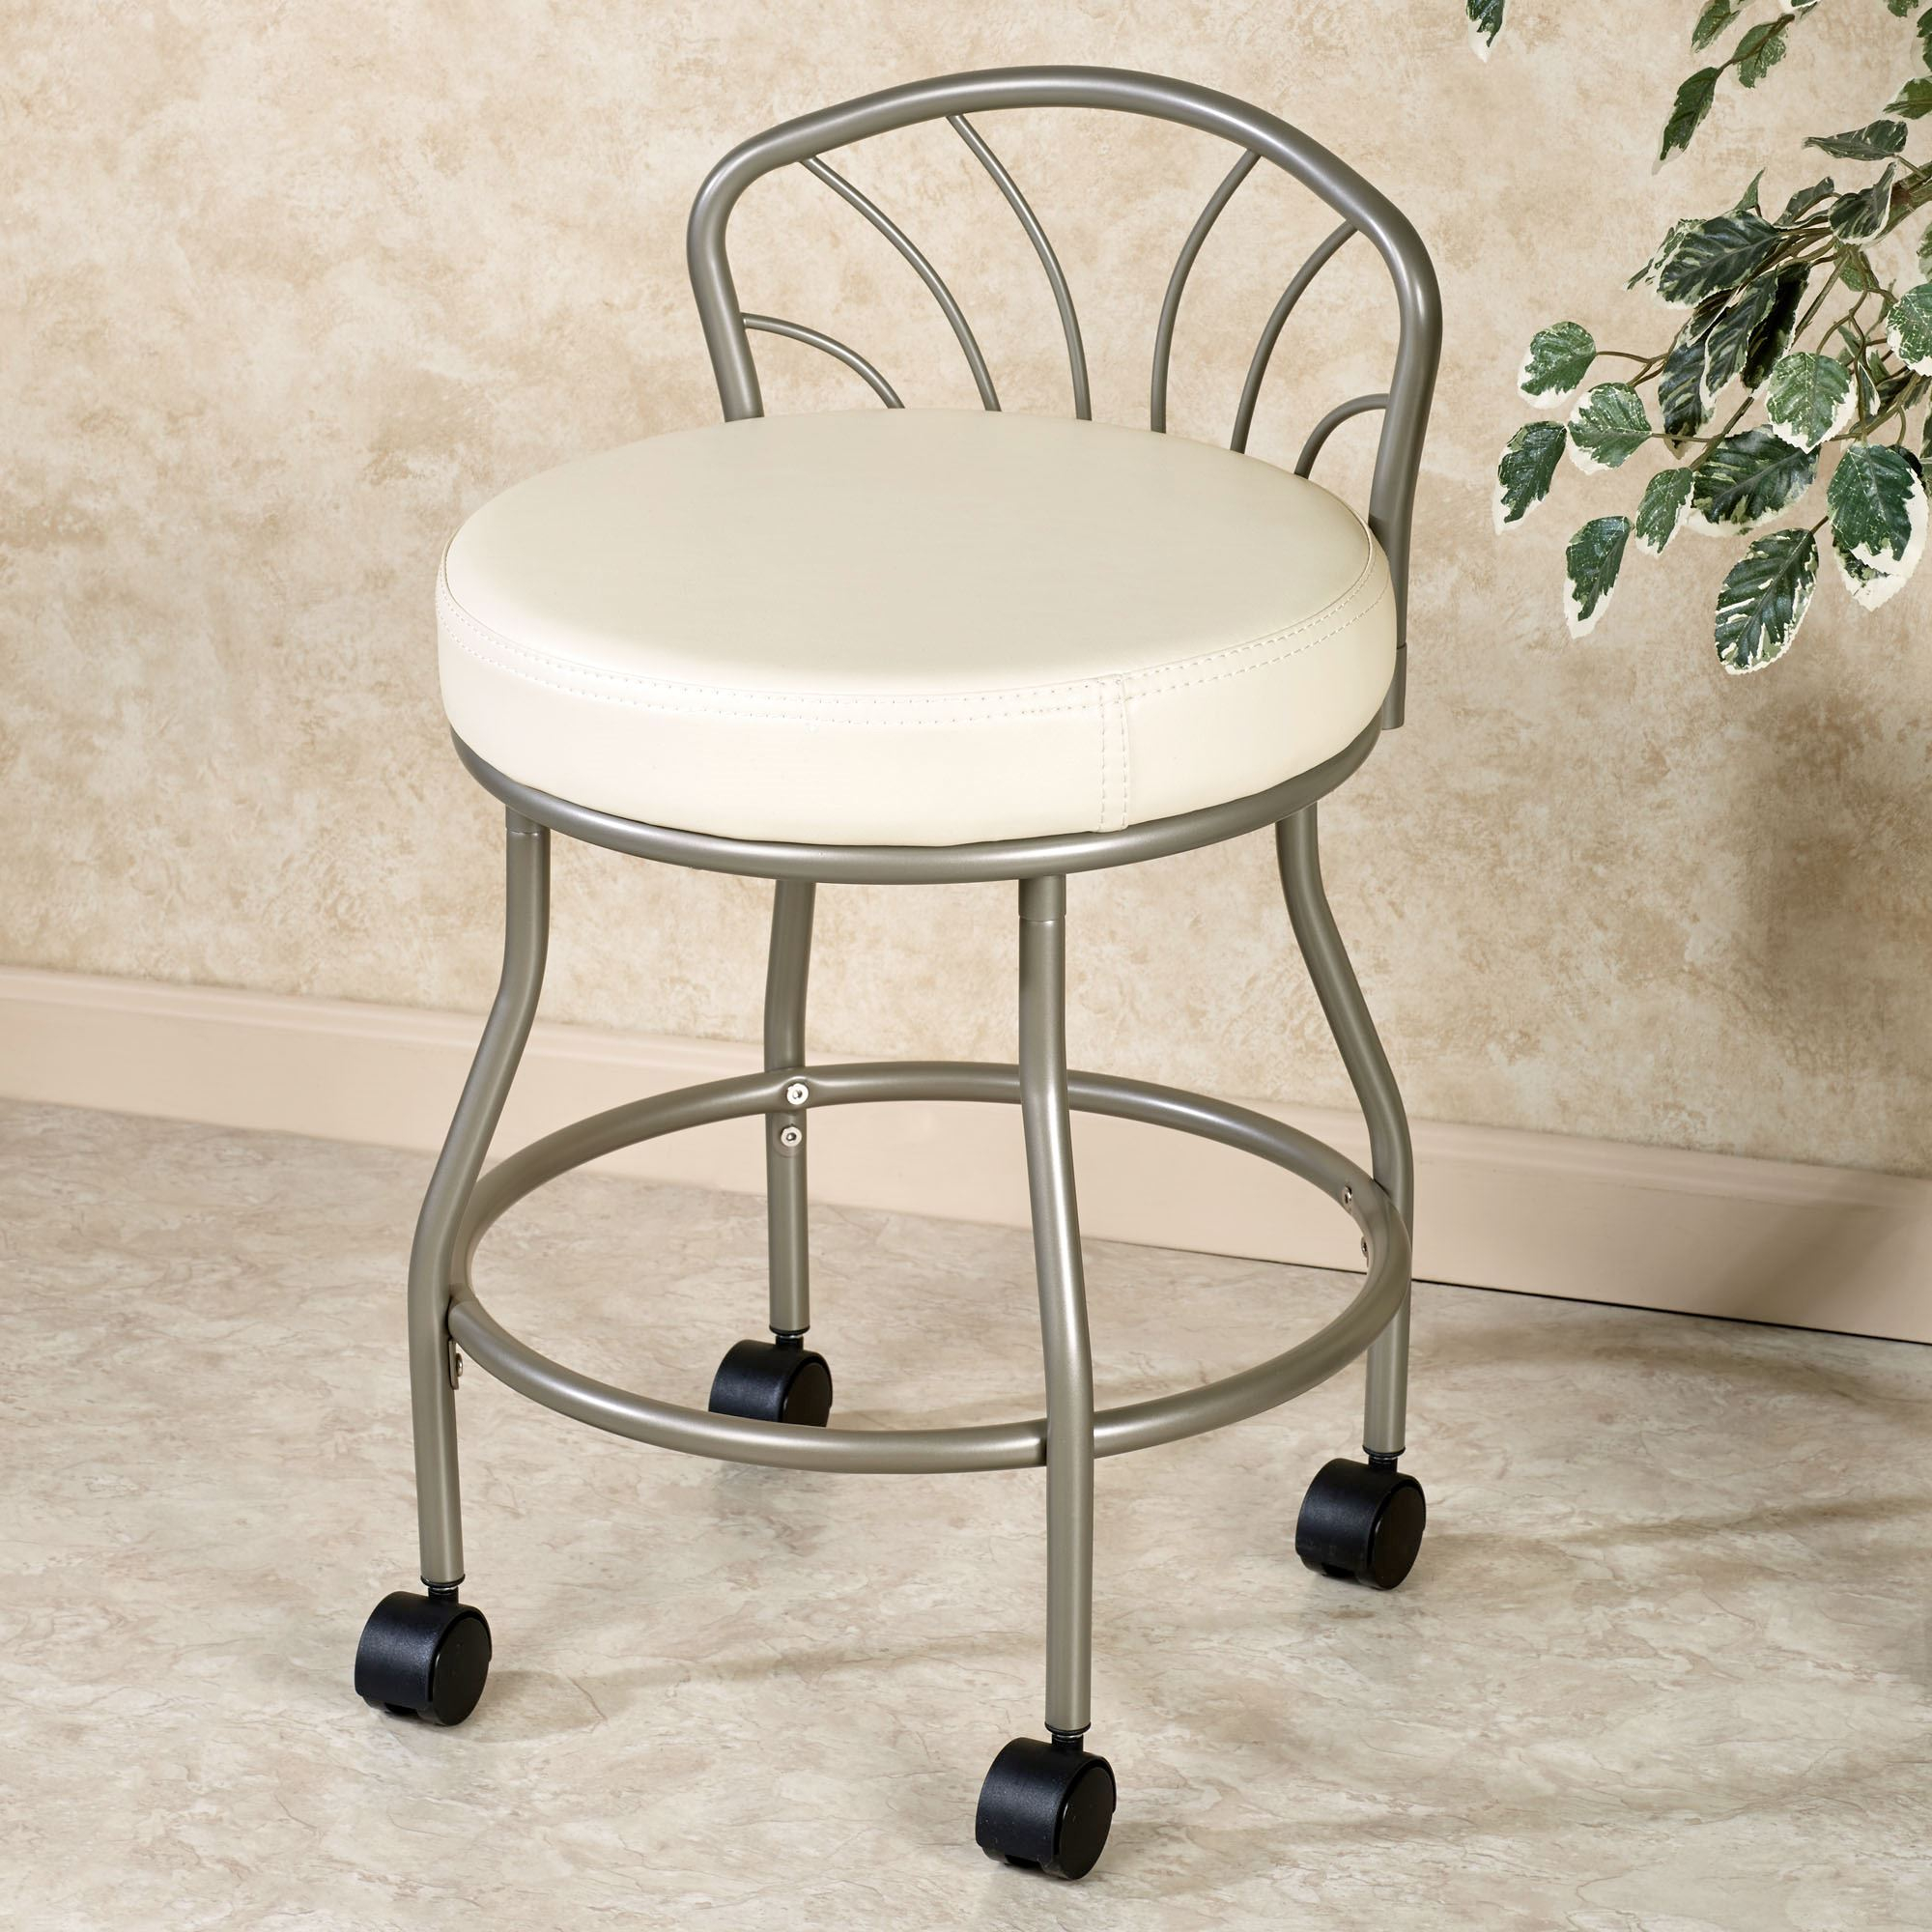 Glamorous Bathroom Vanity Stools With Wheels Furniture Stylish And Chairs For inside Set Bathroom Vanity Stools